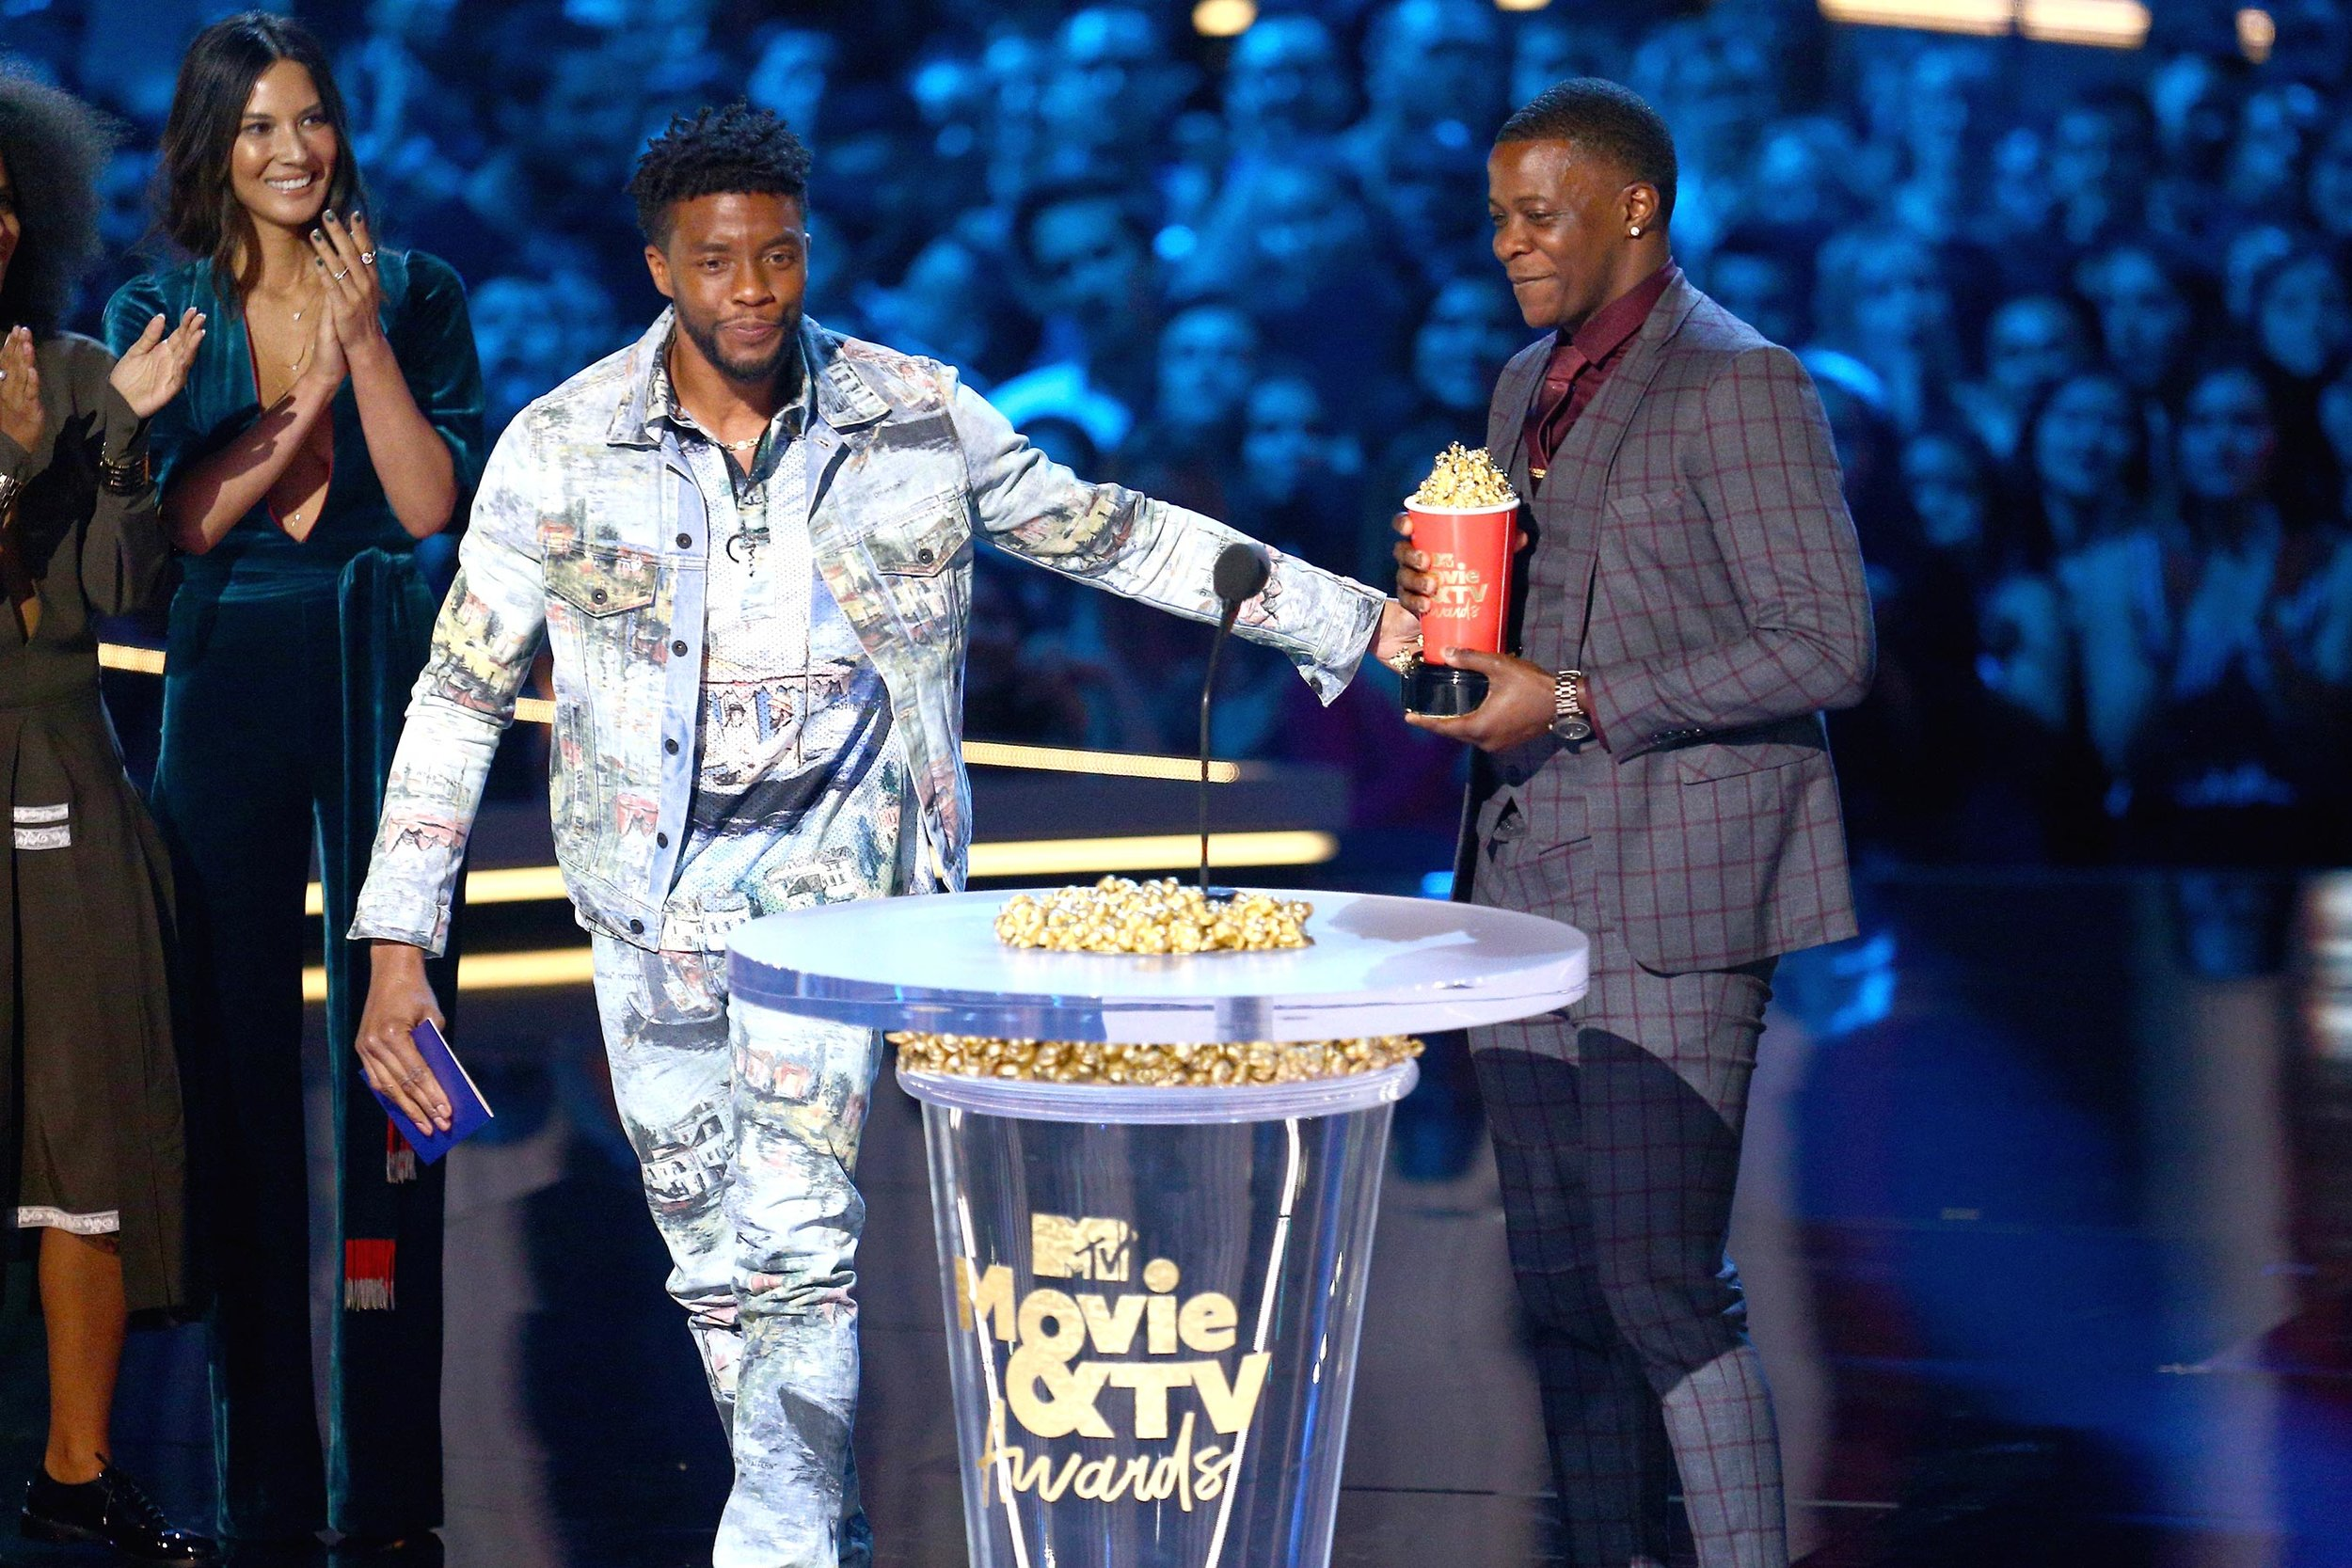 Winner Chadwick Boseman gives his trophy to Waffle House hero James Shaw, Jr.